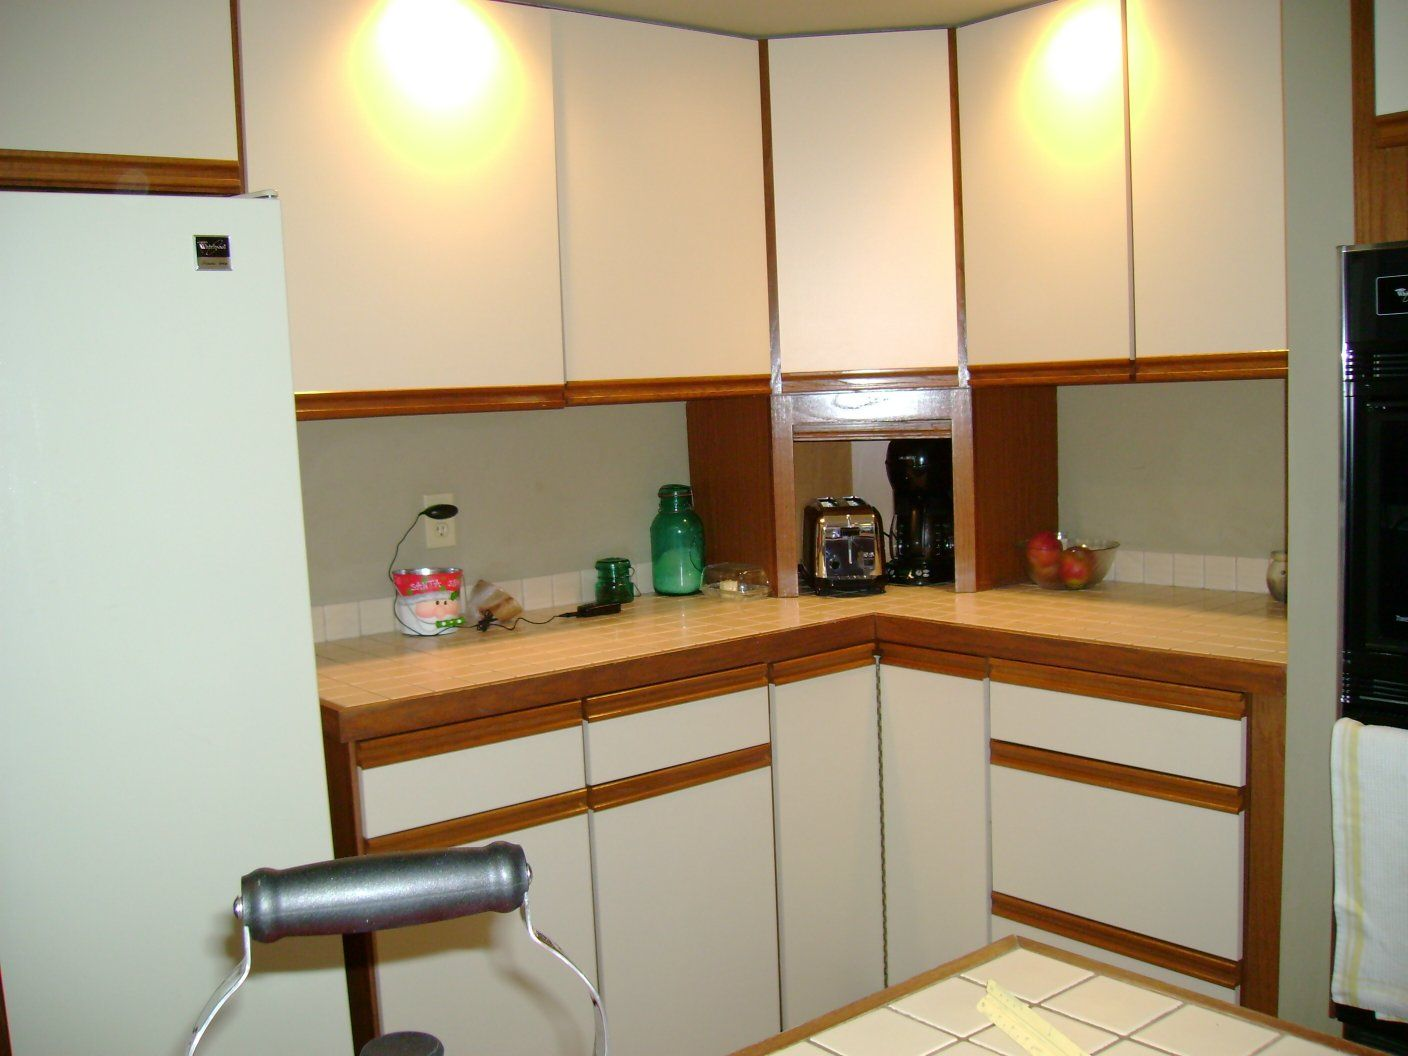 How to paint kitchen cabinets to make the kitchen better